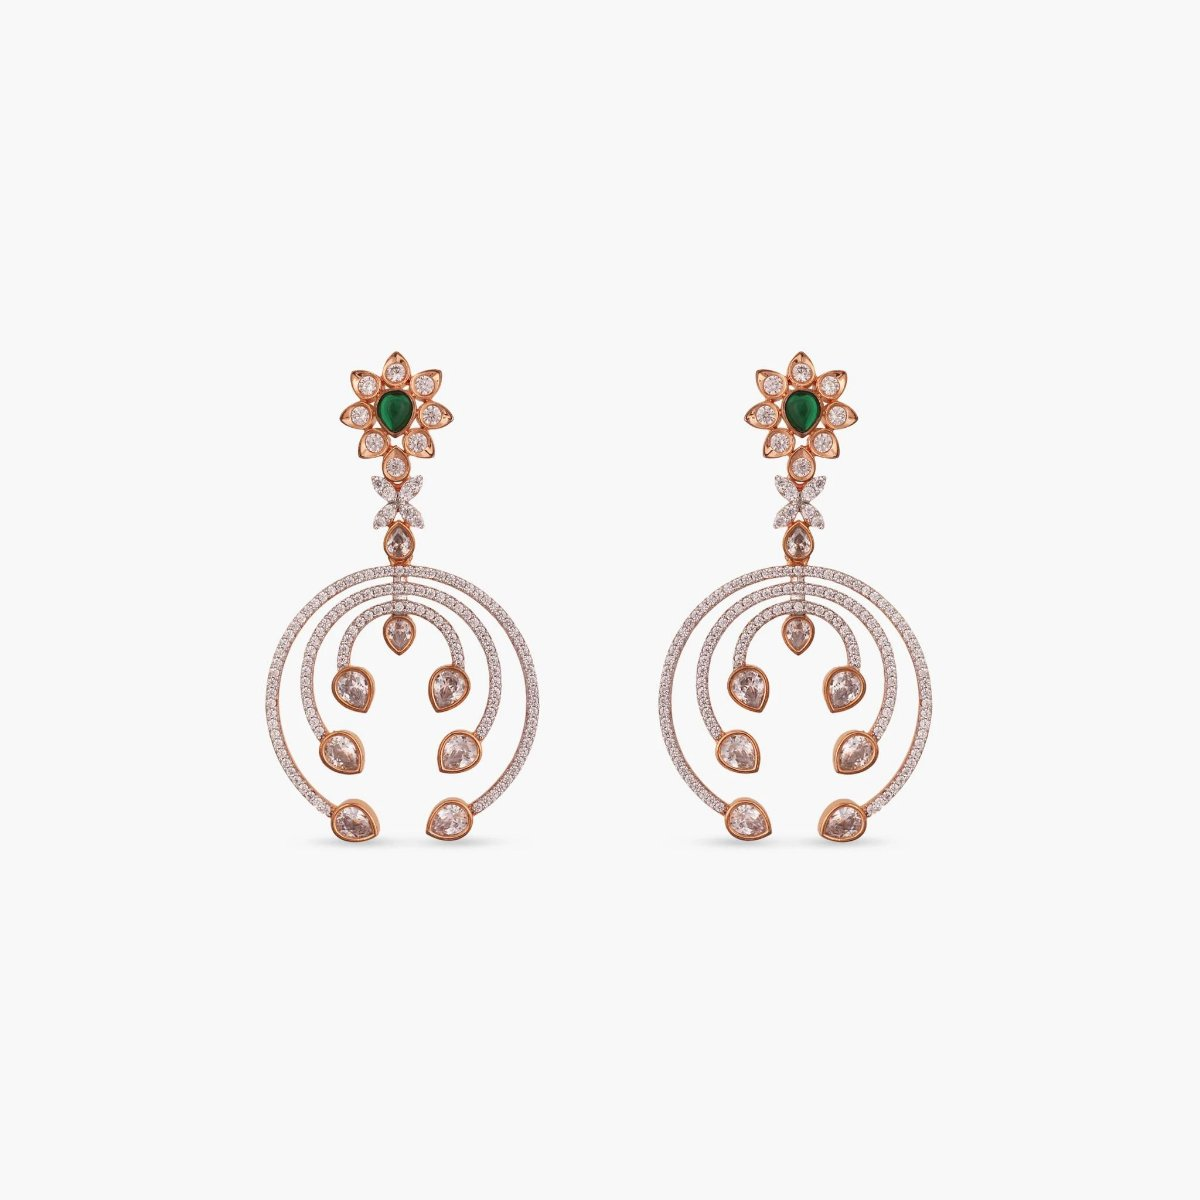 Surya Nakshatra CZ Earrings